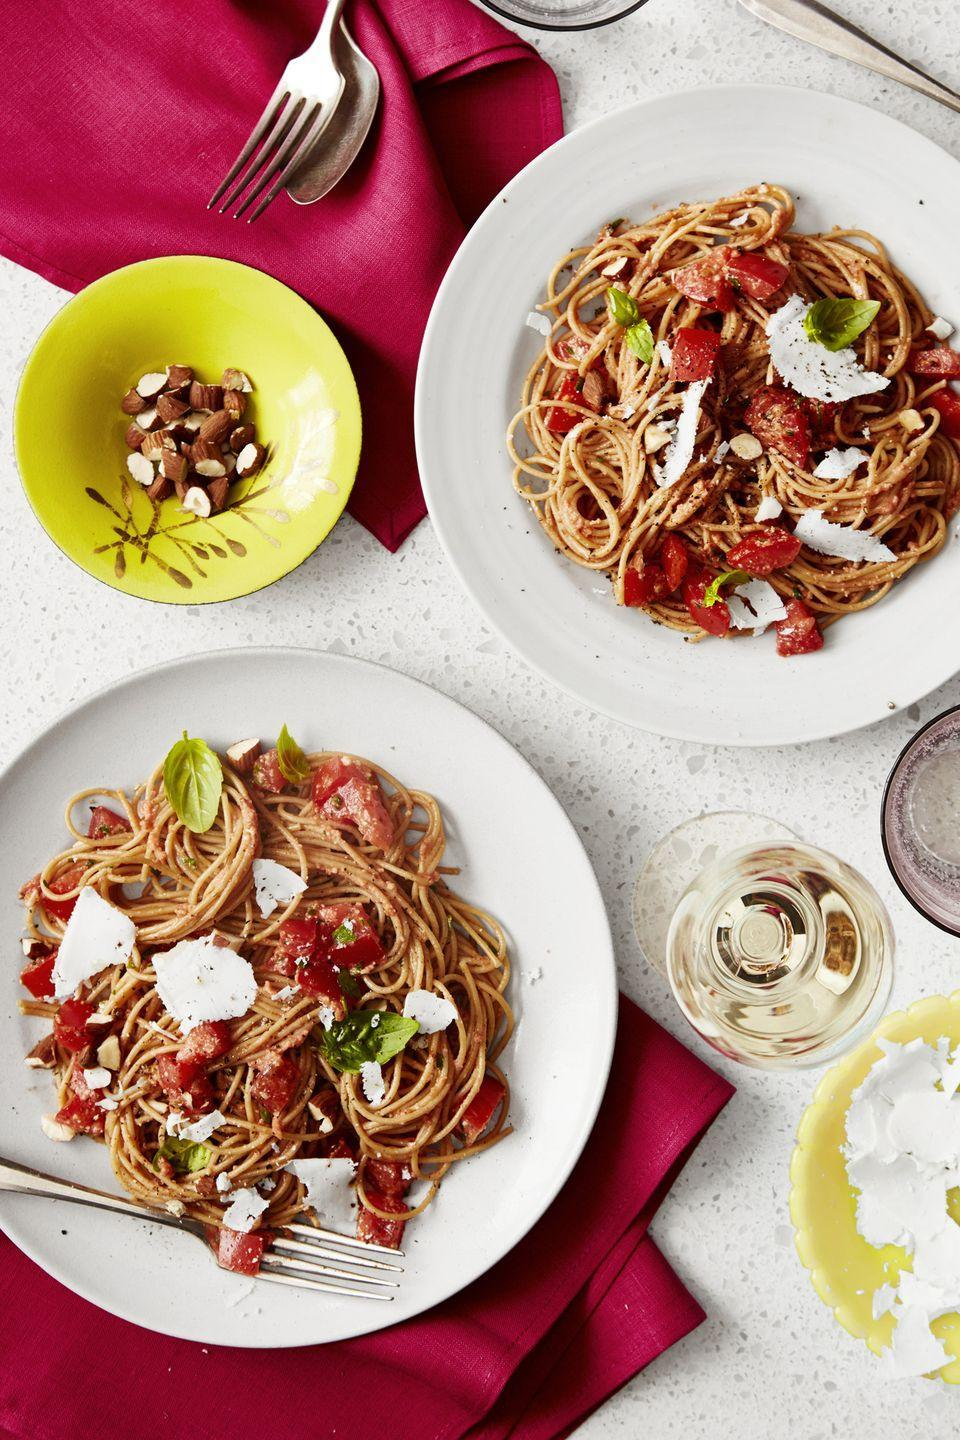 """<p>Beat the heat with a no-cook pasta sauce. Yep, you heard that right. </p><p><em><a href=""""https://www.goodhousekeeping.com/food-recipes/a45705/spaghetti-no-cook-heirloom-tomato-sauce-recipe/"""" rel=""""nofollow noopener"""" target=""""_blank"""" data-ylk=""""slk:Get the recipe for Spaghetti with No-Cook Heirloom Tomato Sauce »"""" class=""""link rapid-noclick-resp"""">Get the recipe for Spaghetti with No-Cook Heirloom Tomato Sauce »</a></em></p>"""